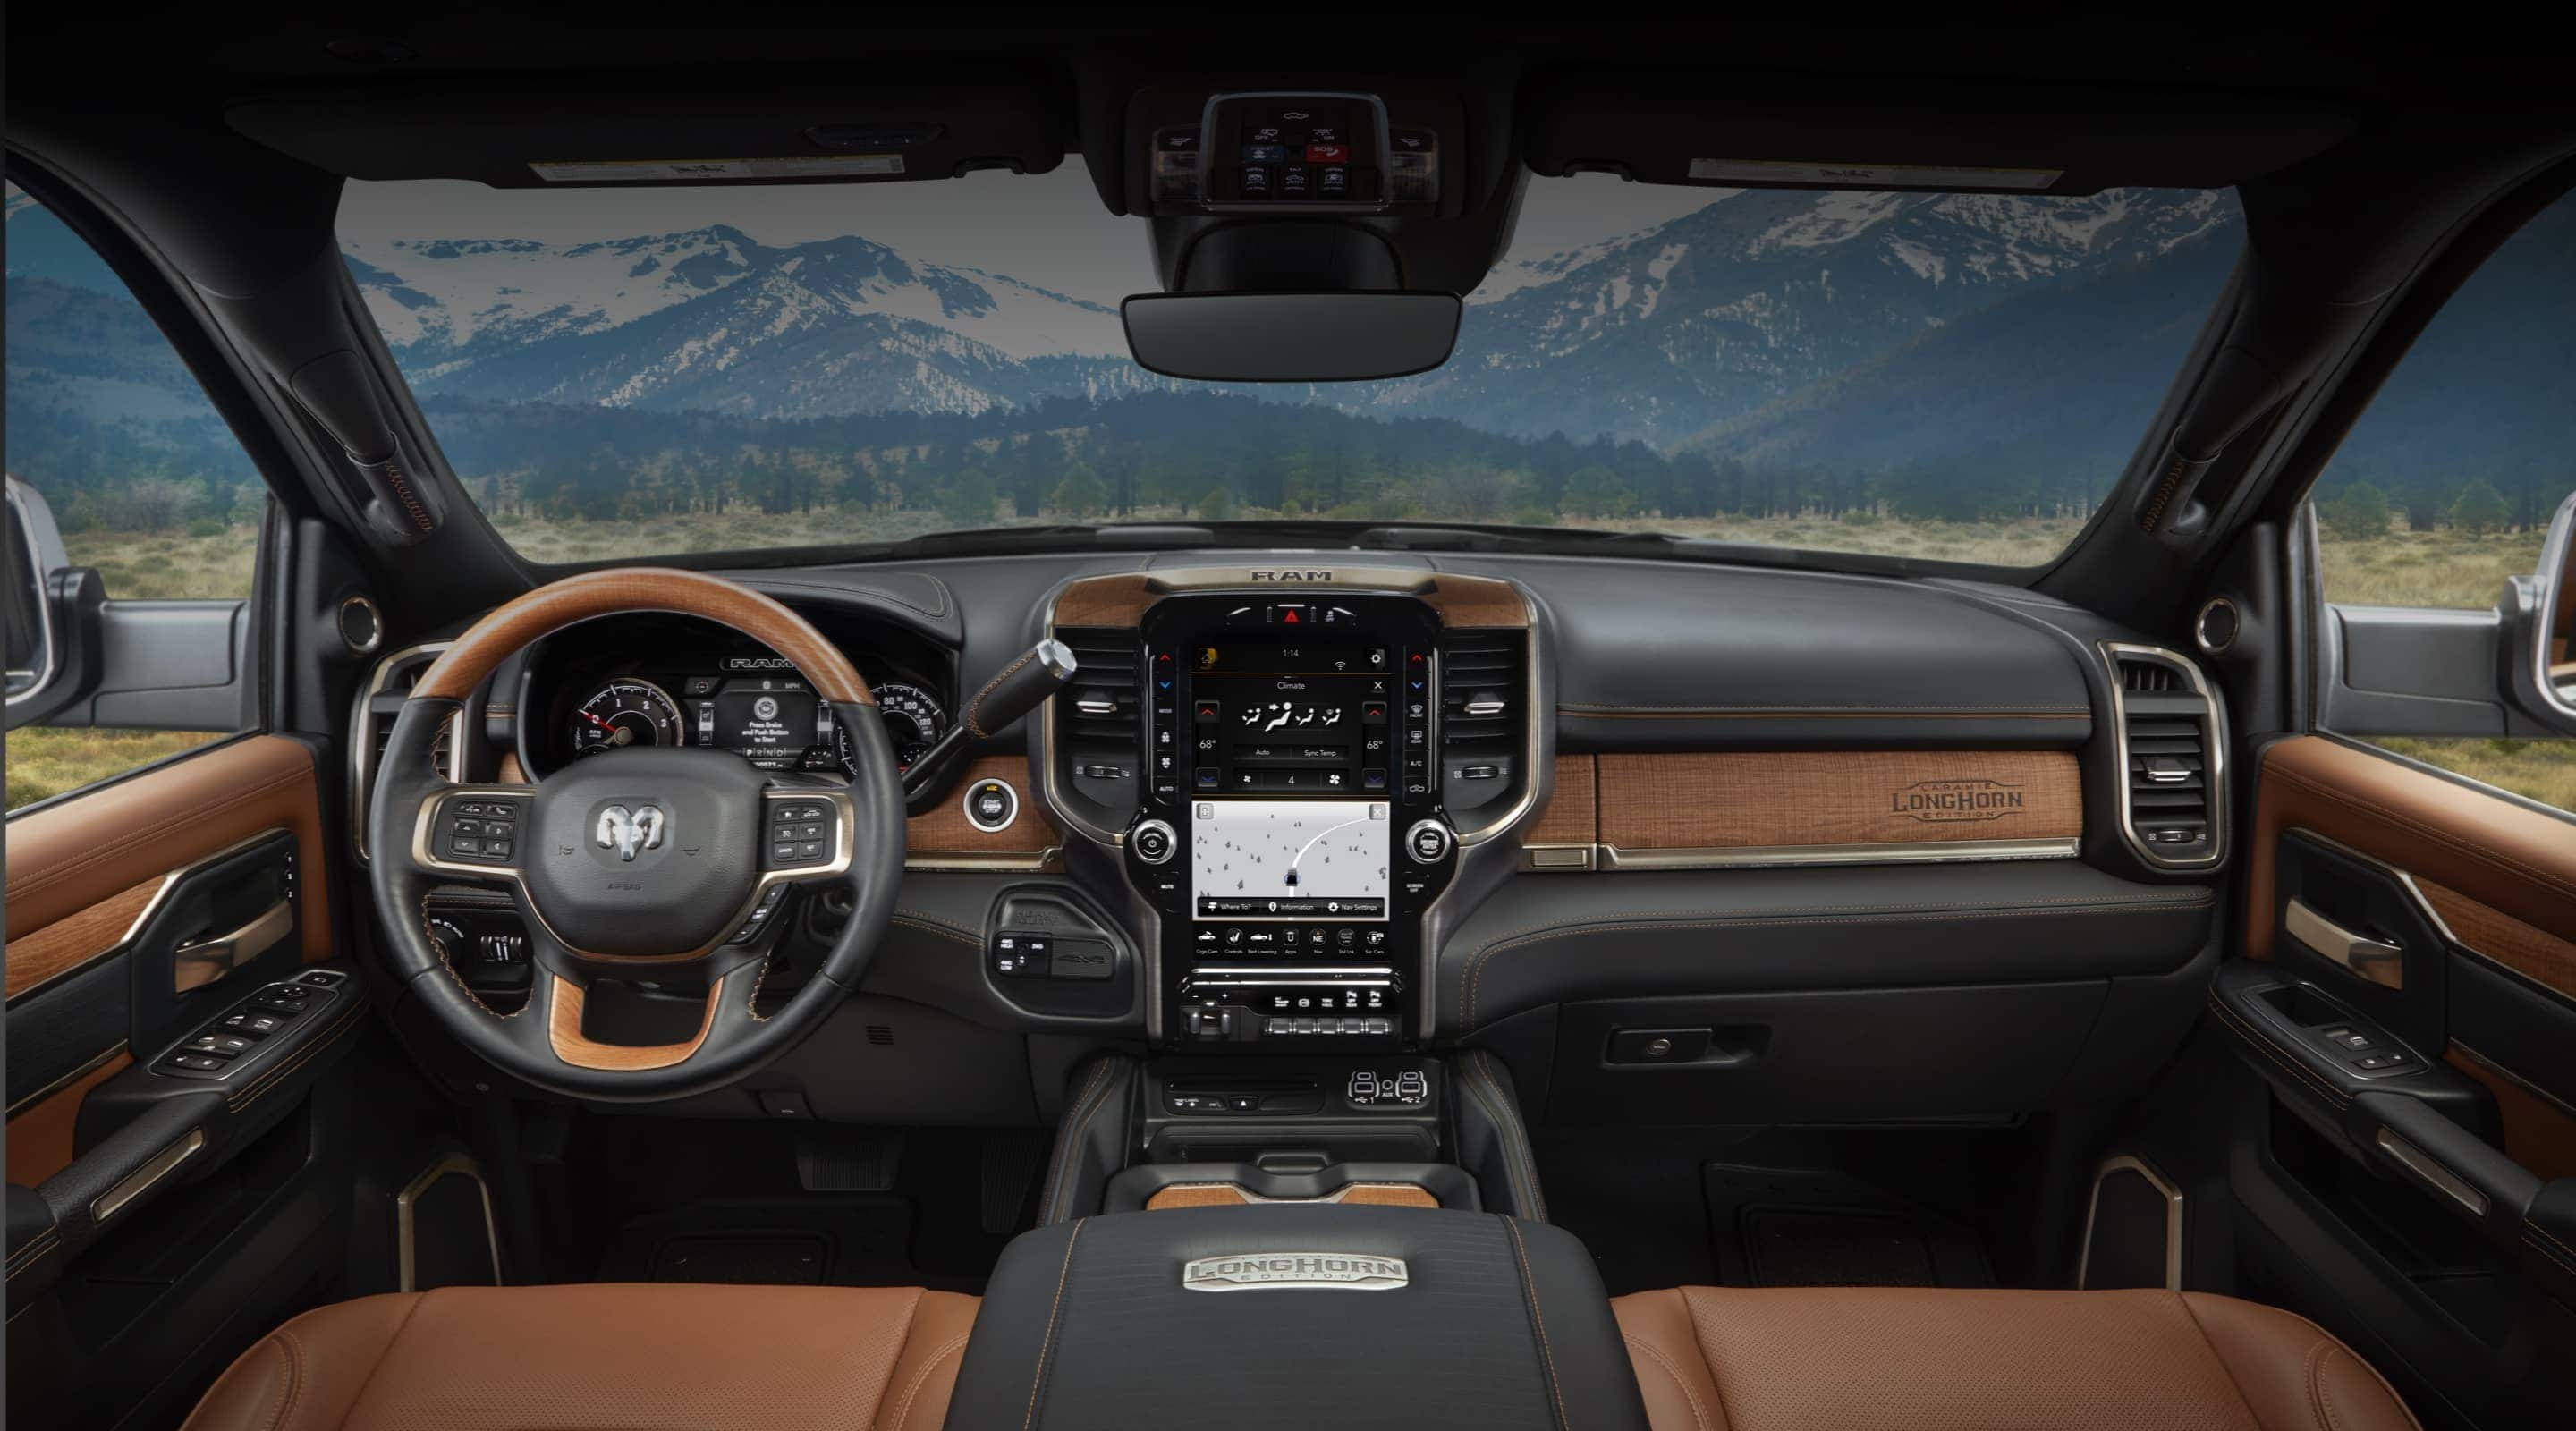 The interior of the 2020 Ram 3500 Laramie Longhorn with leather and wood accents.